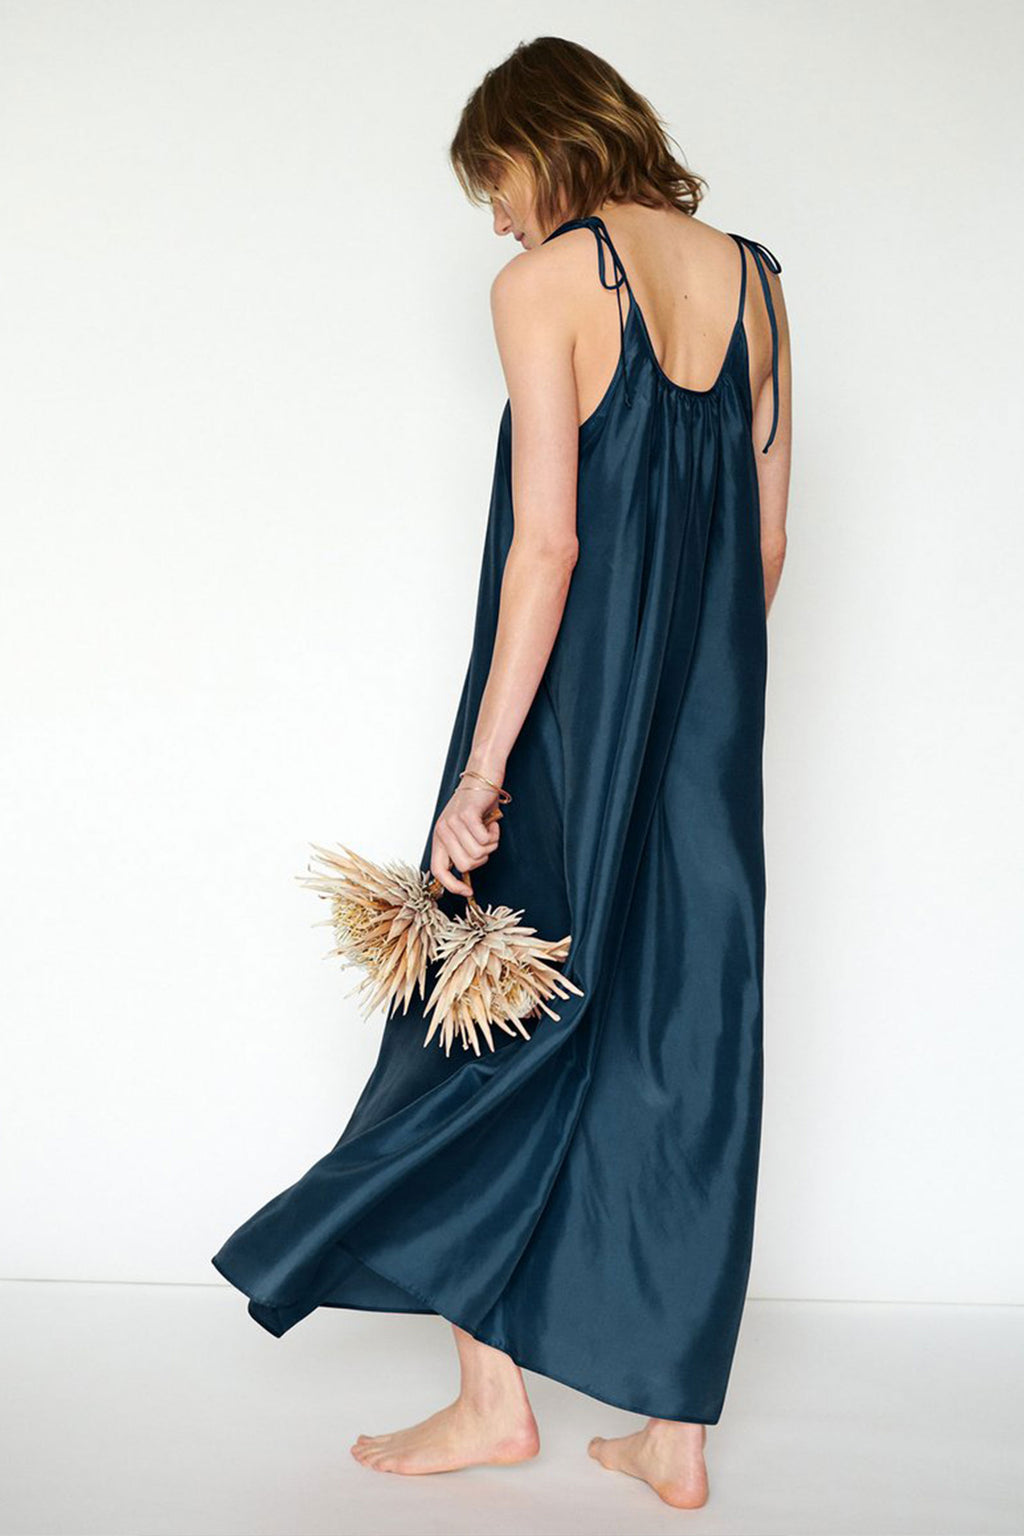 Loup Charmant Maxi Silk Slip Dress in Deep Ocean